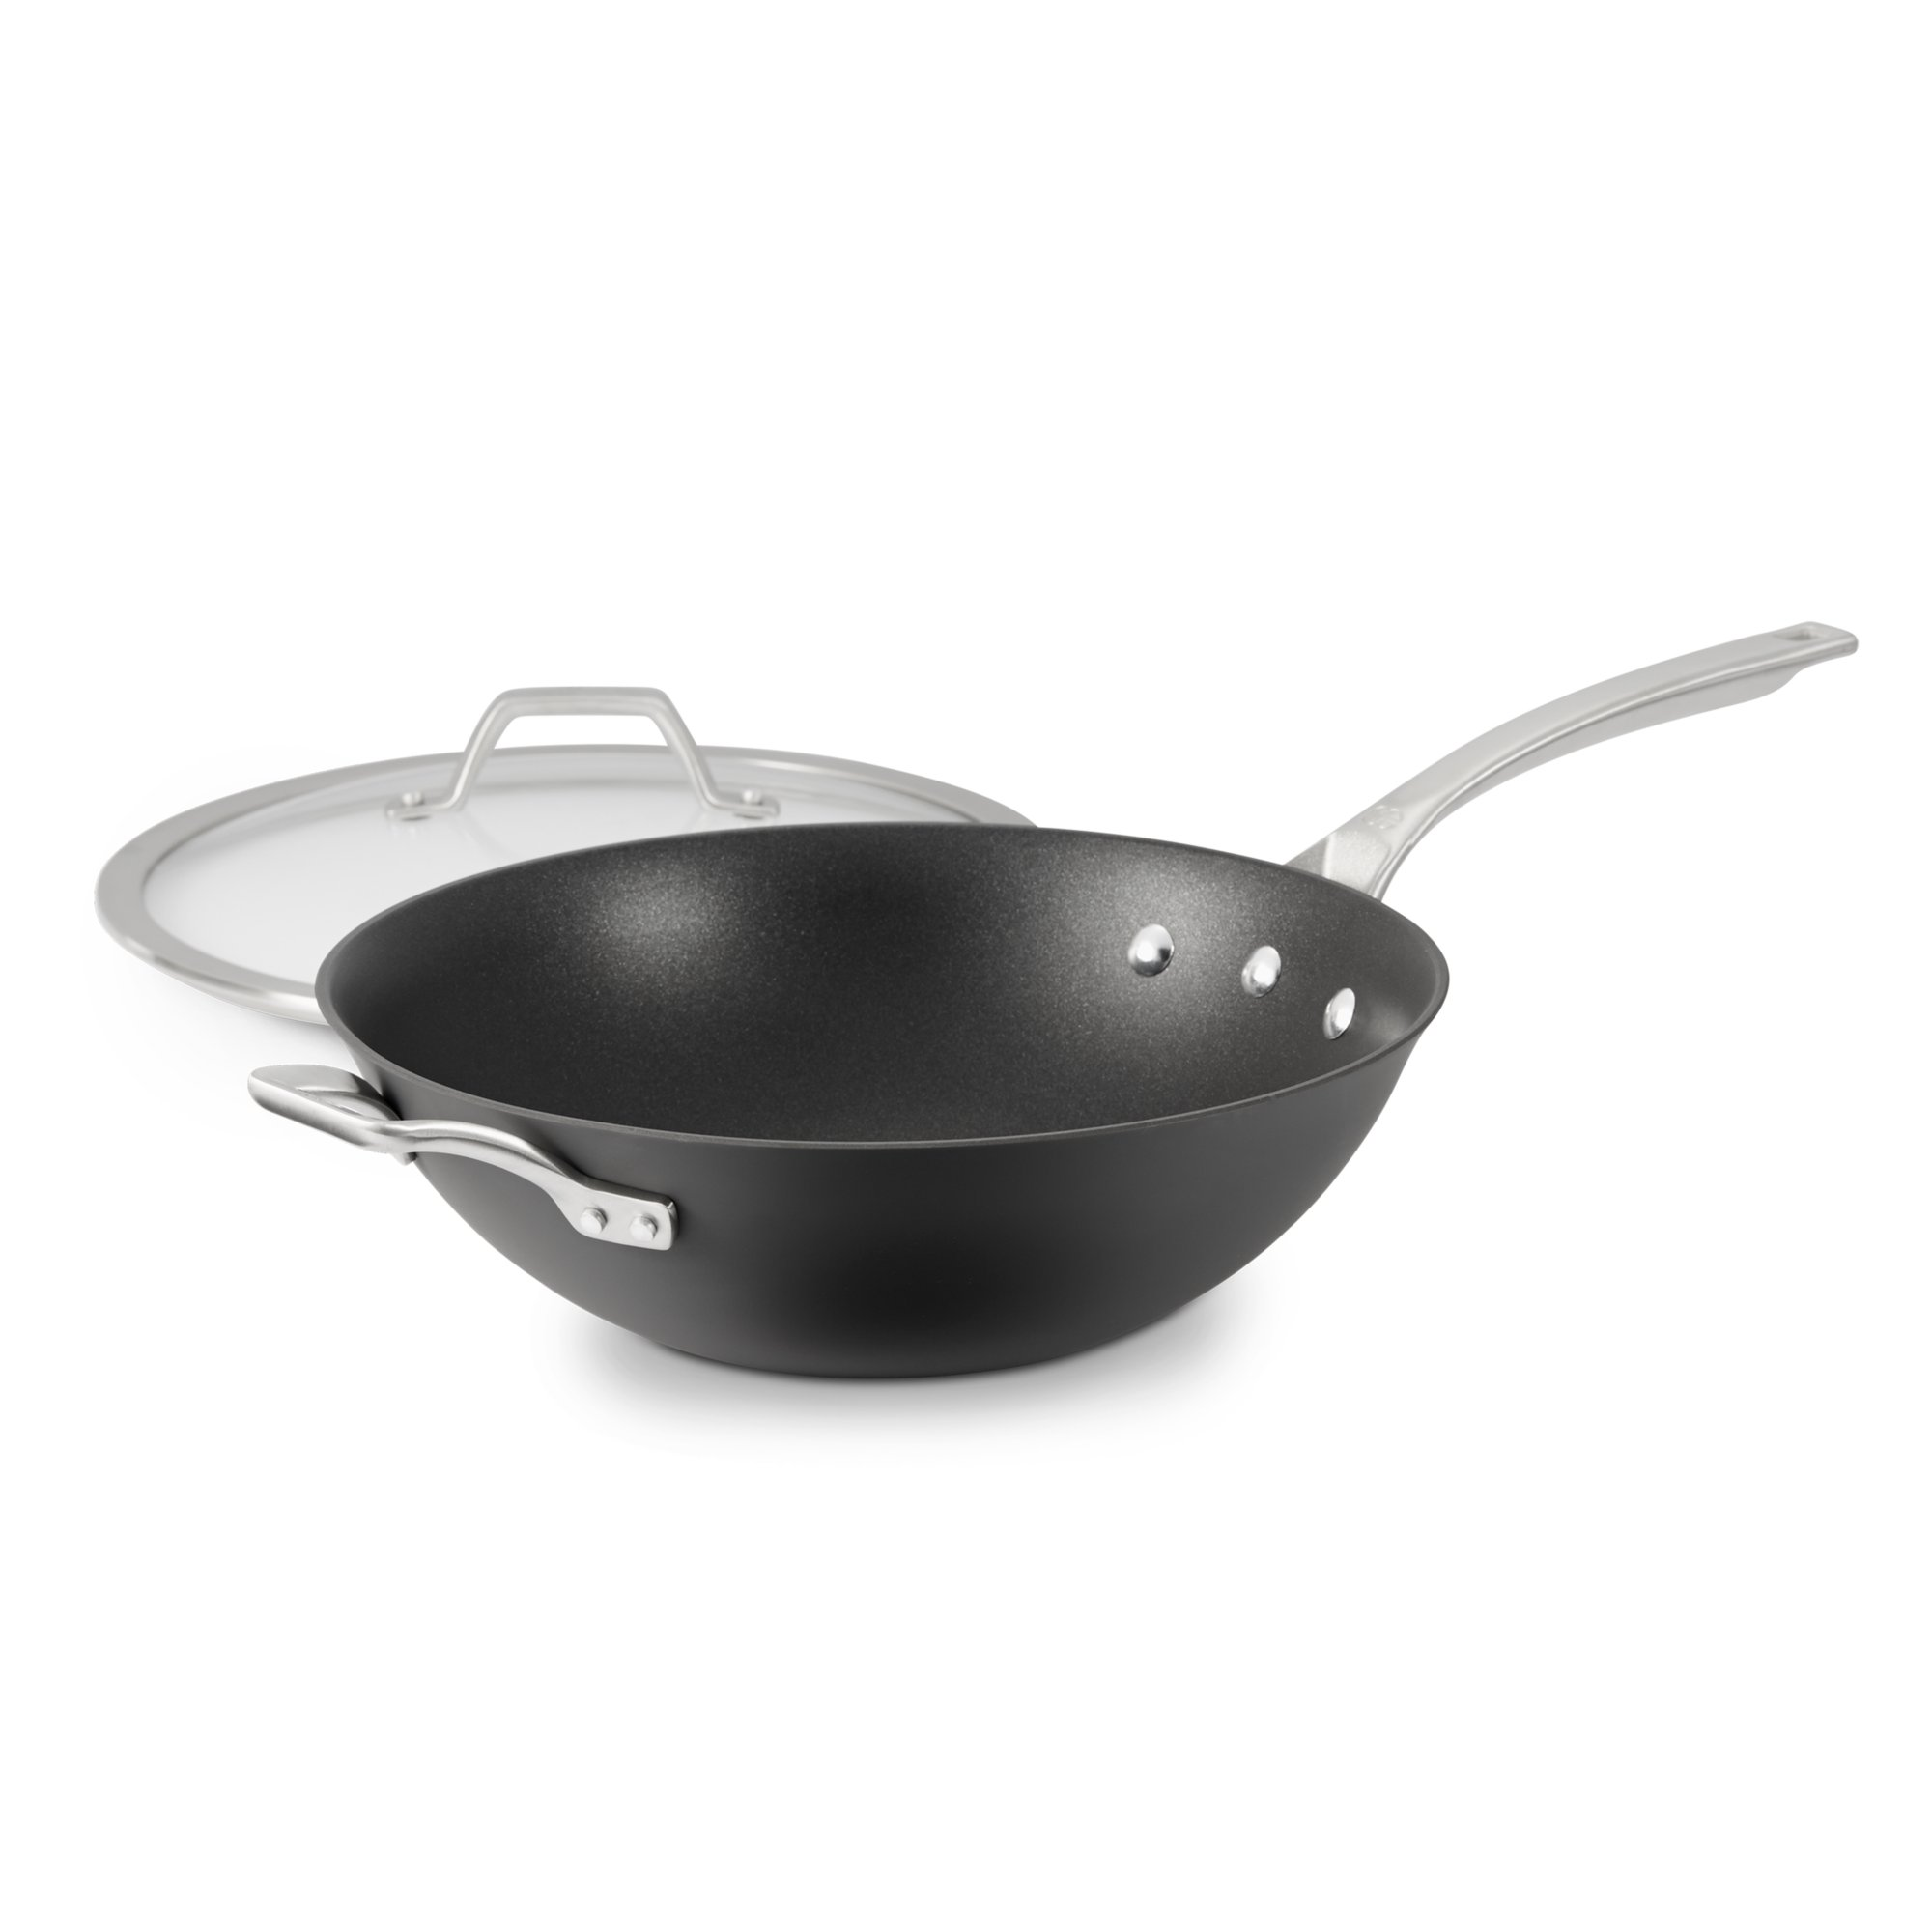 Can You Fry Food In A Nonstick Pan